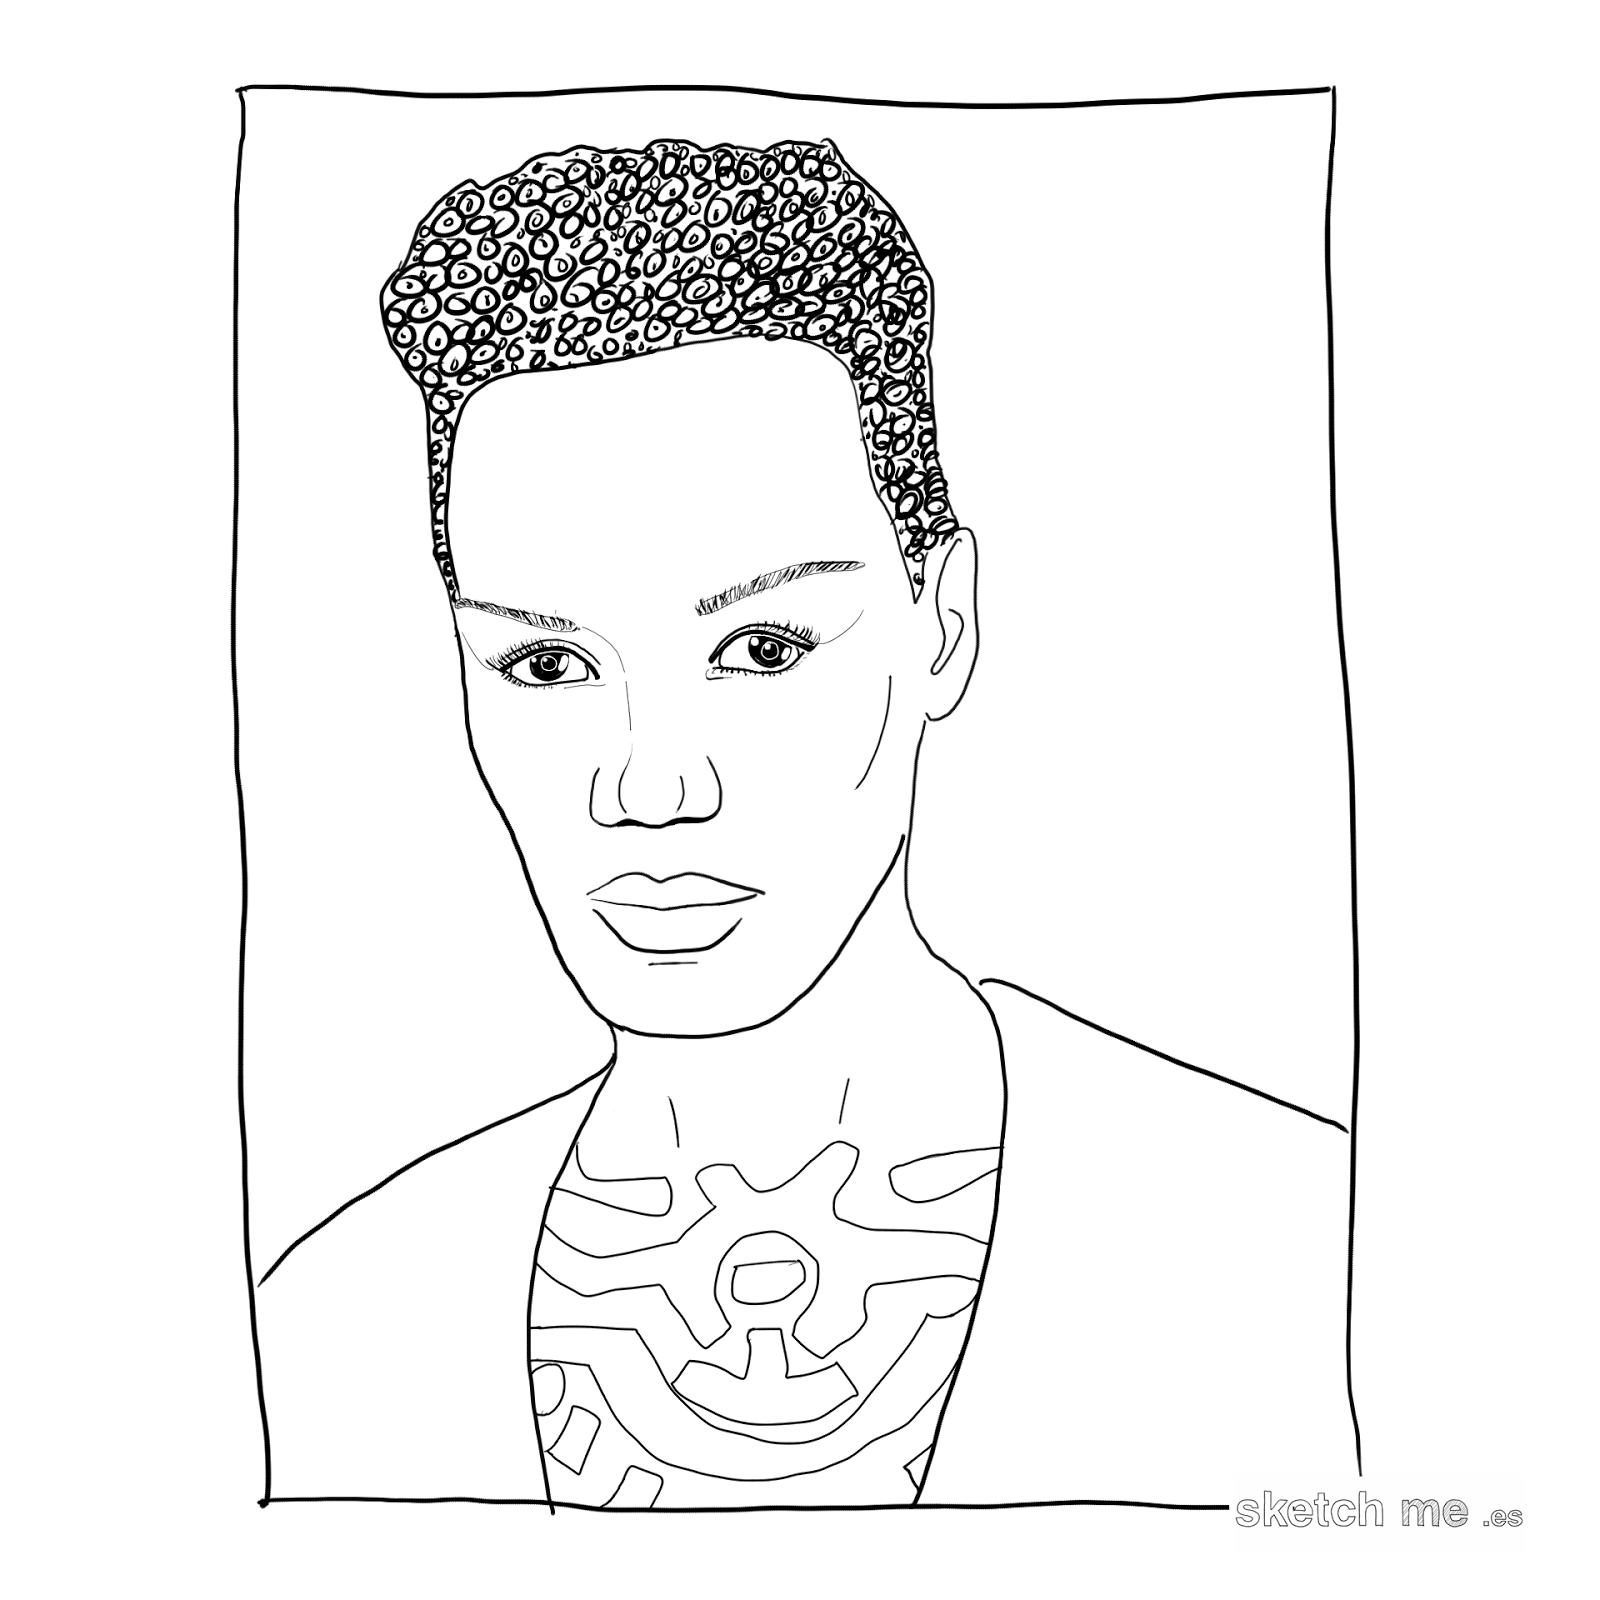 custom-portrait-retrato-personalizado-grace-jones